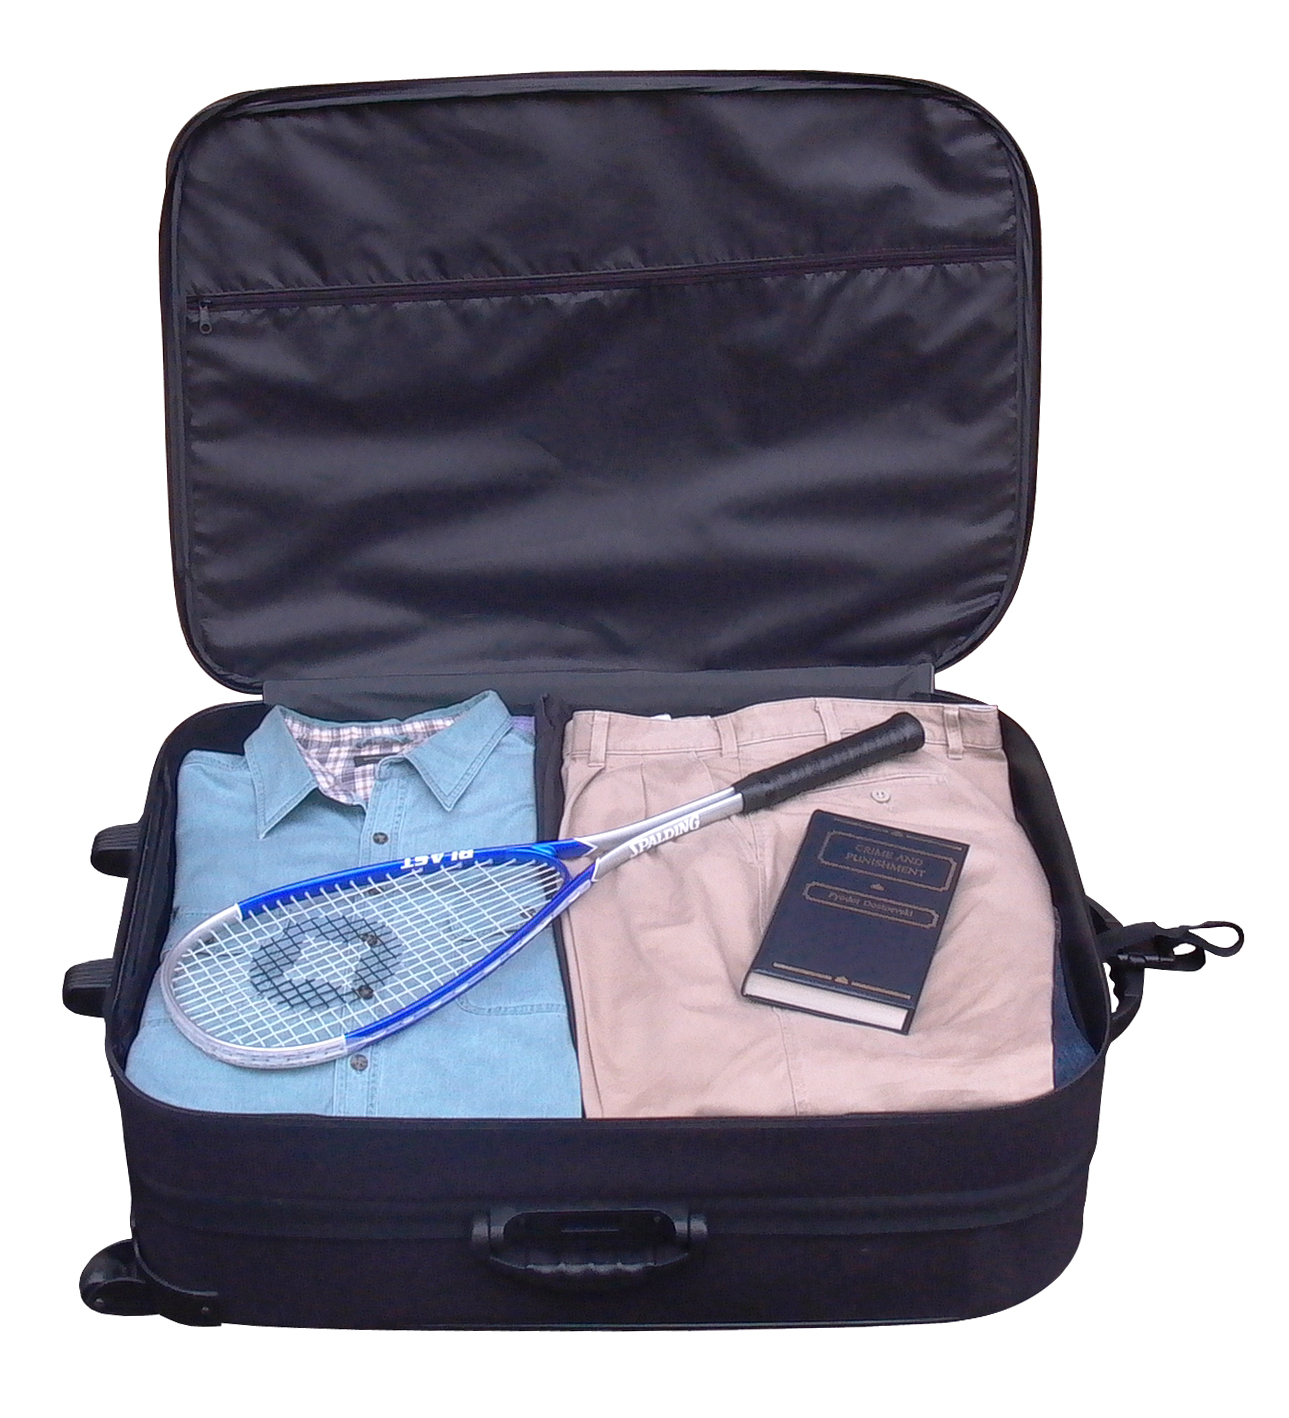 neatly-packed-suitcase-1524953